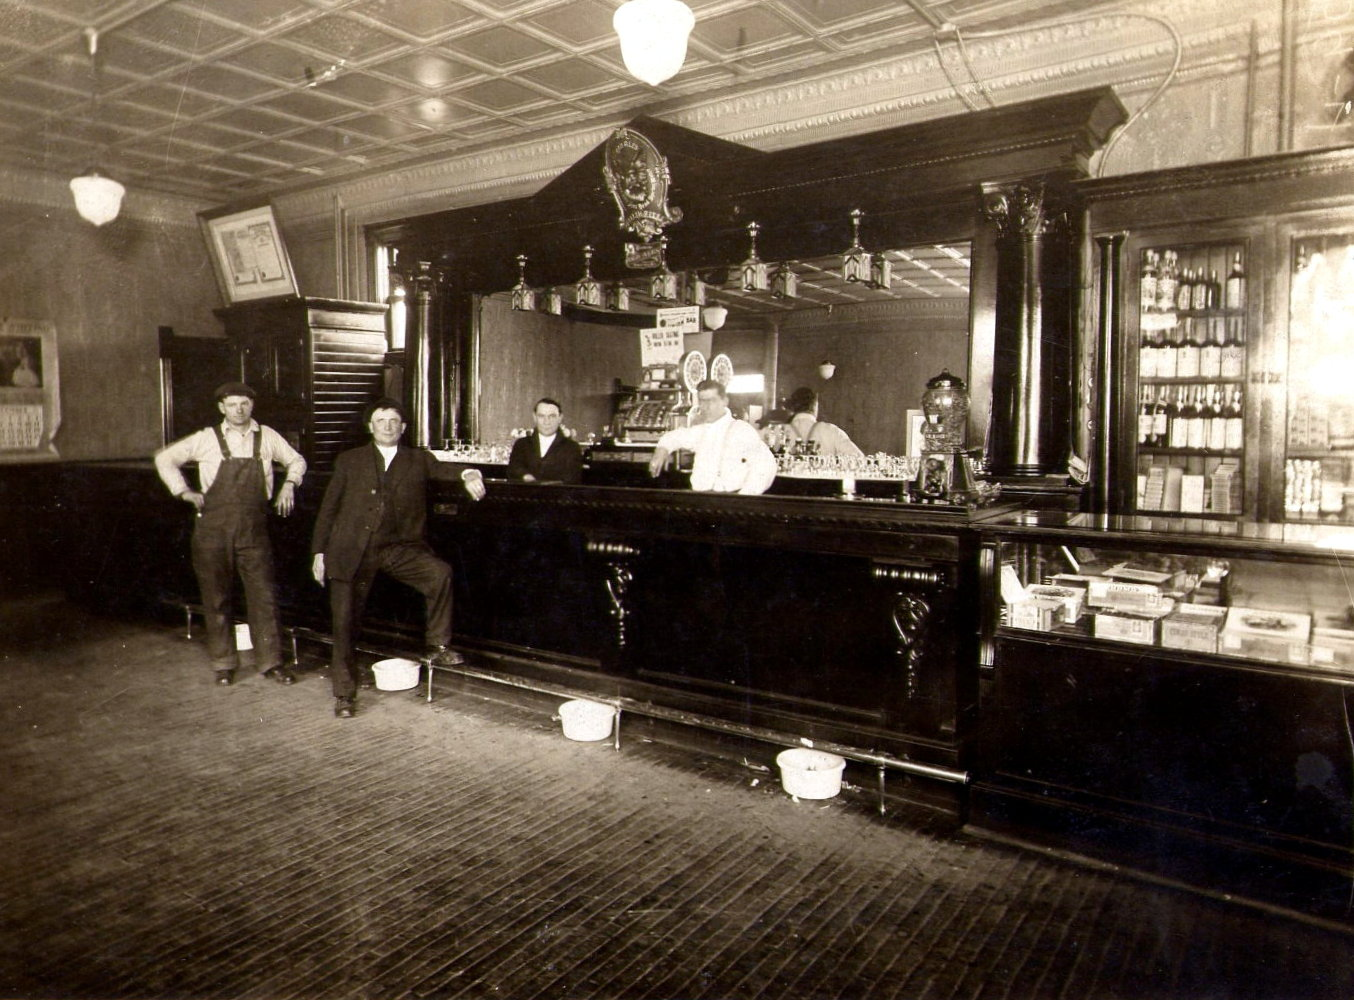 The Vogel's owned a boardinghouse, which contained a saloon.